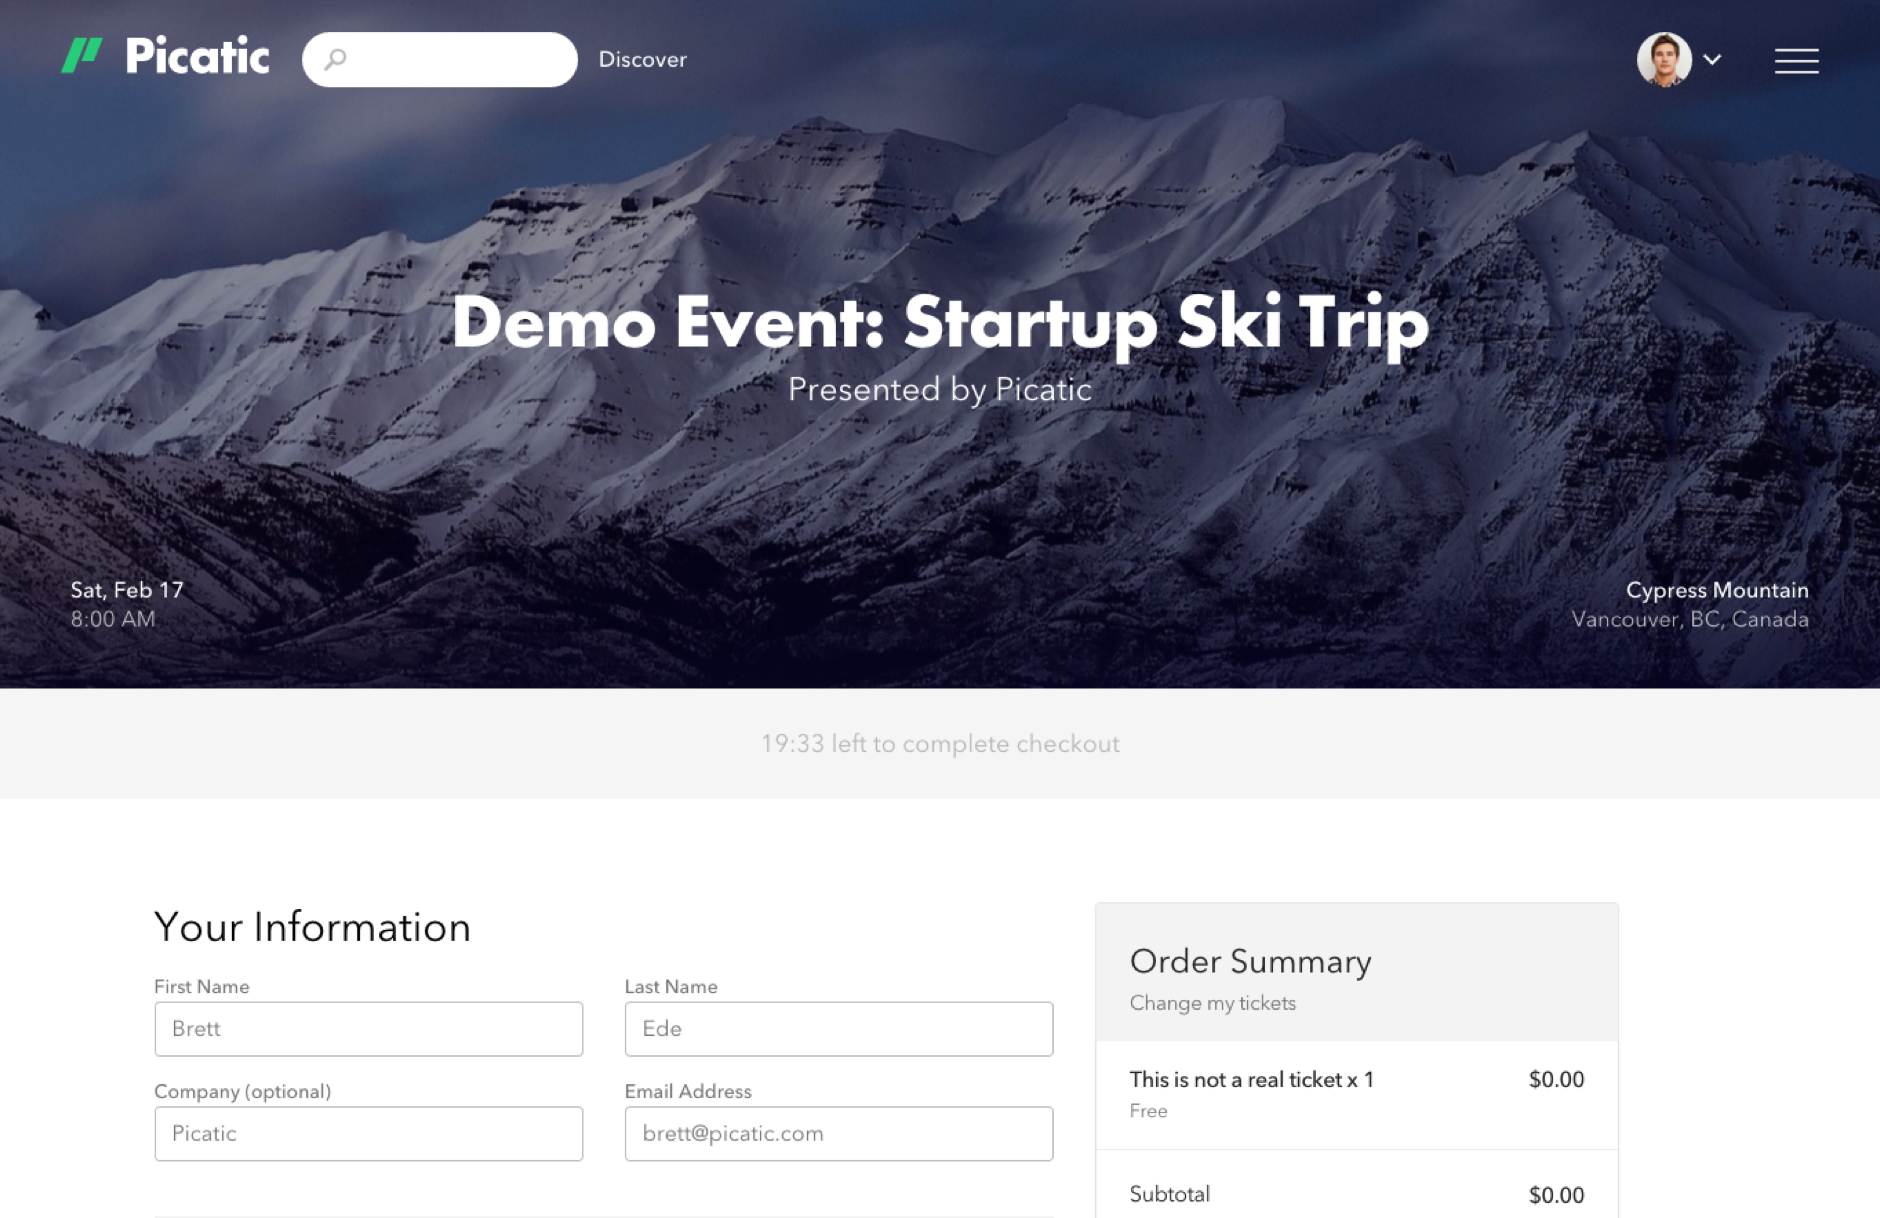 Picatic Checkout. One-step purchase checkout and ticket assignment makes it easy for your attendees to buy tickets.